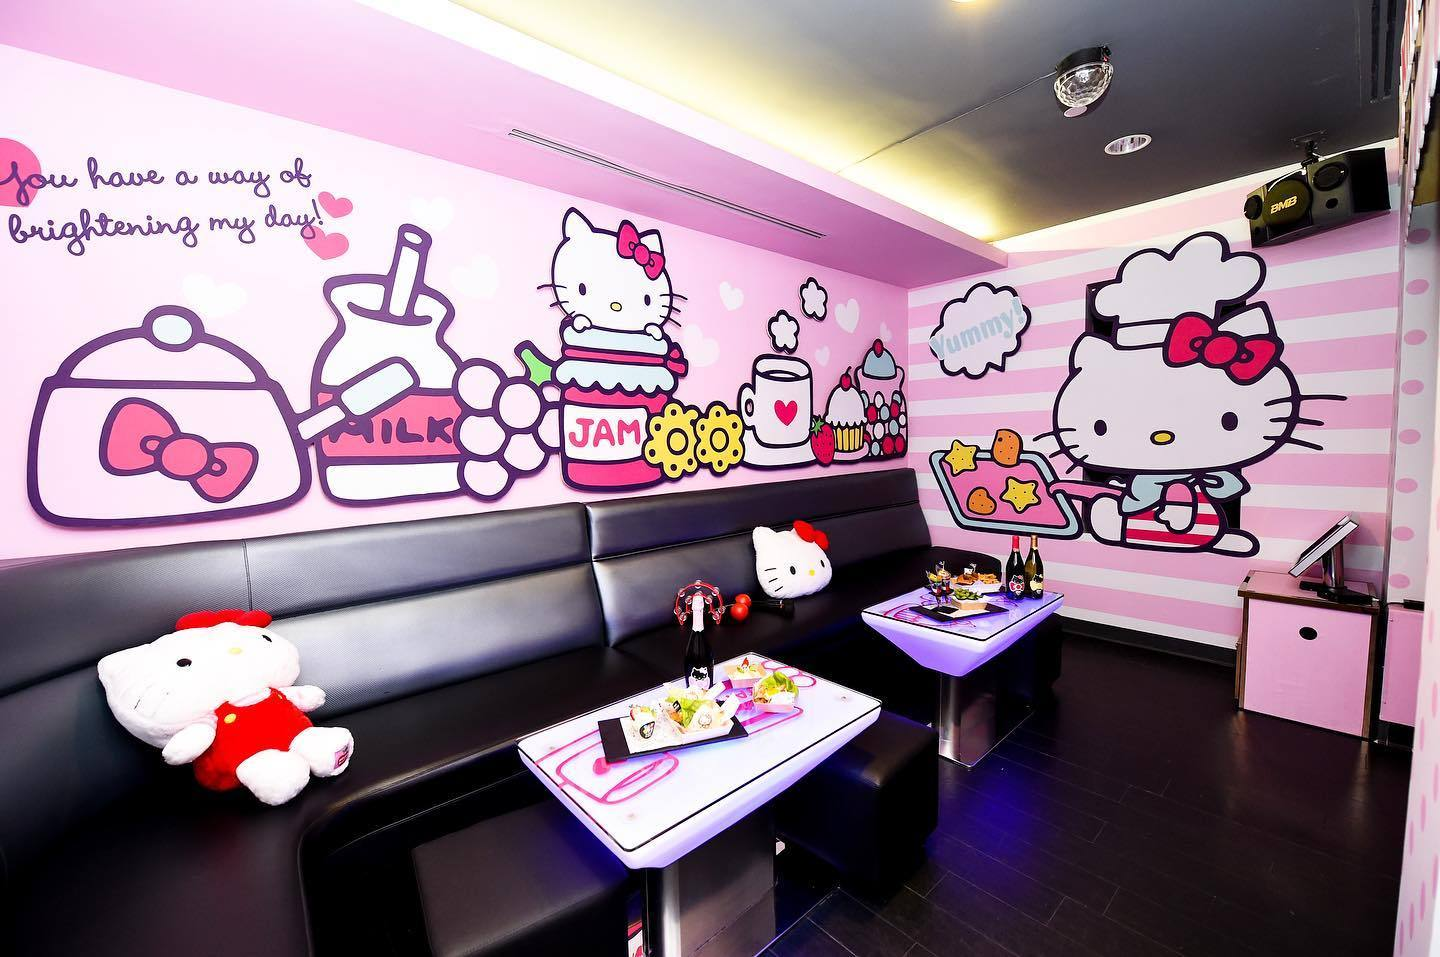 Hello Kitty Bakery Room at Energy Bistro & Karaoke in Alhambra